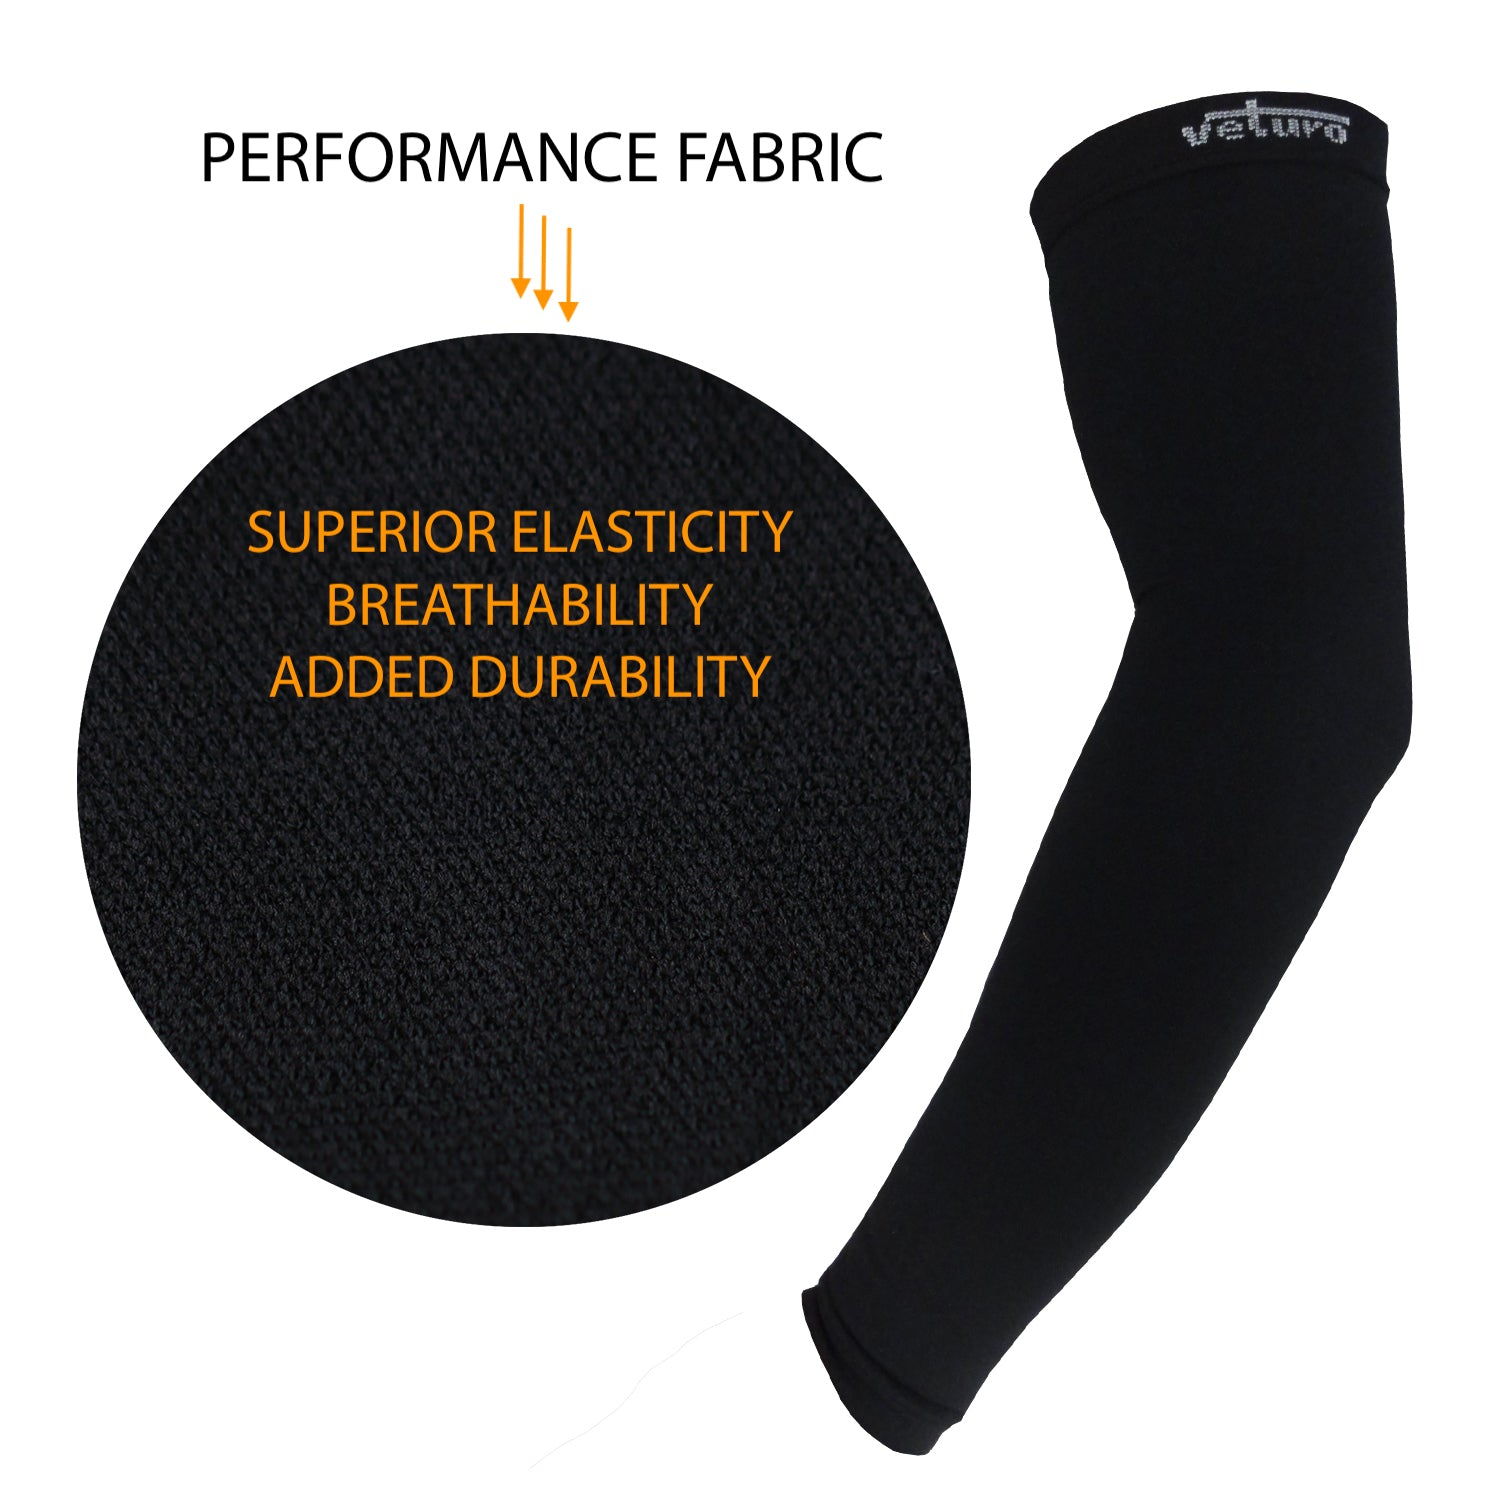 Graduated Compression Arm Sleeves Support and Recovery - Gloves for Therapy by Veturo